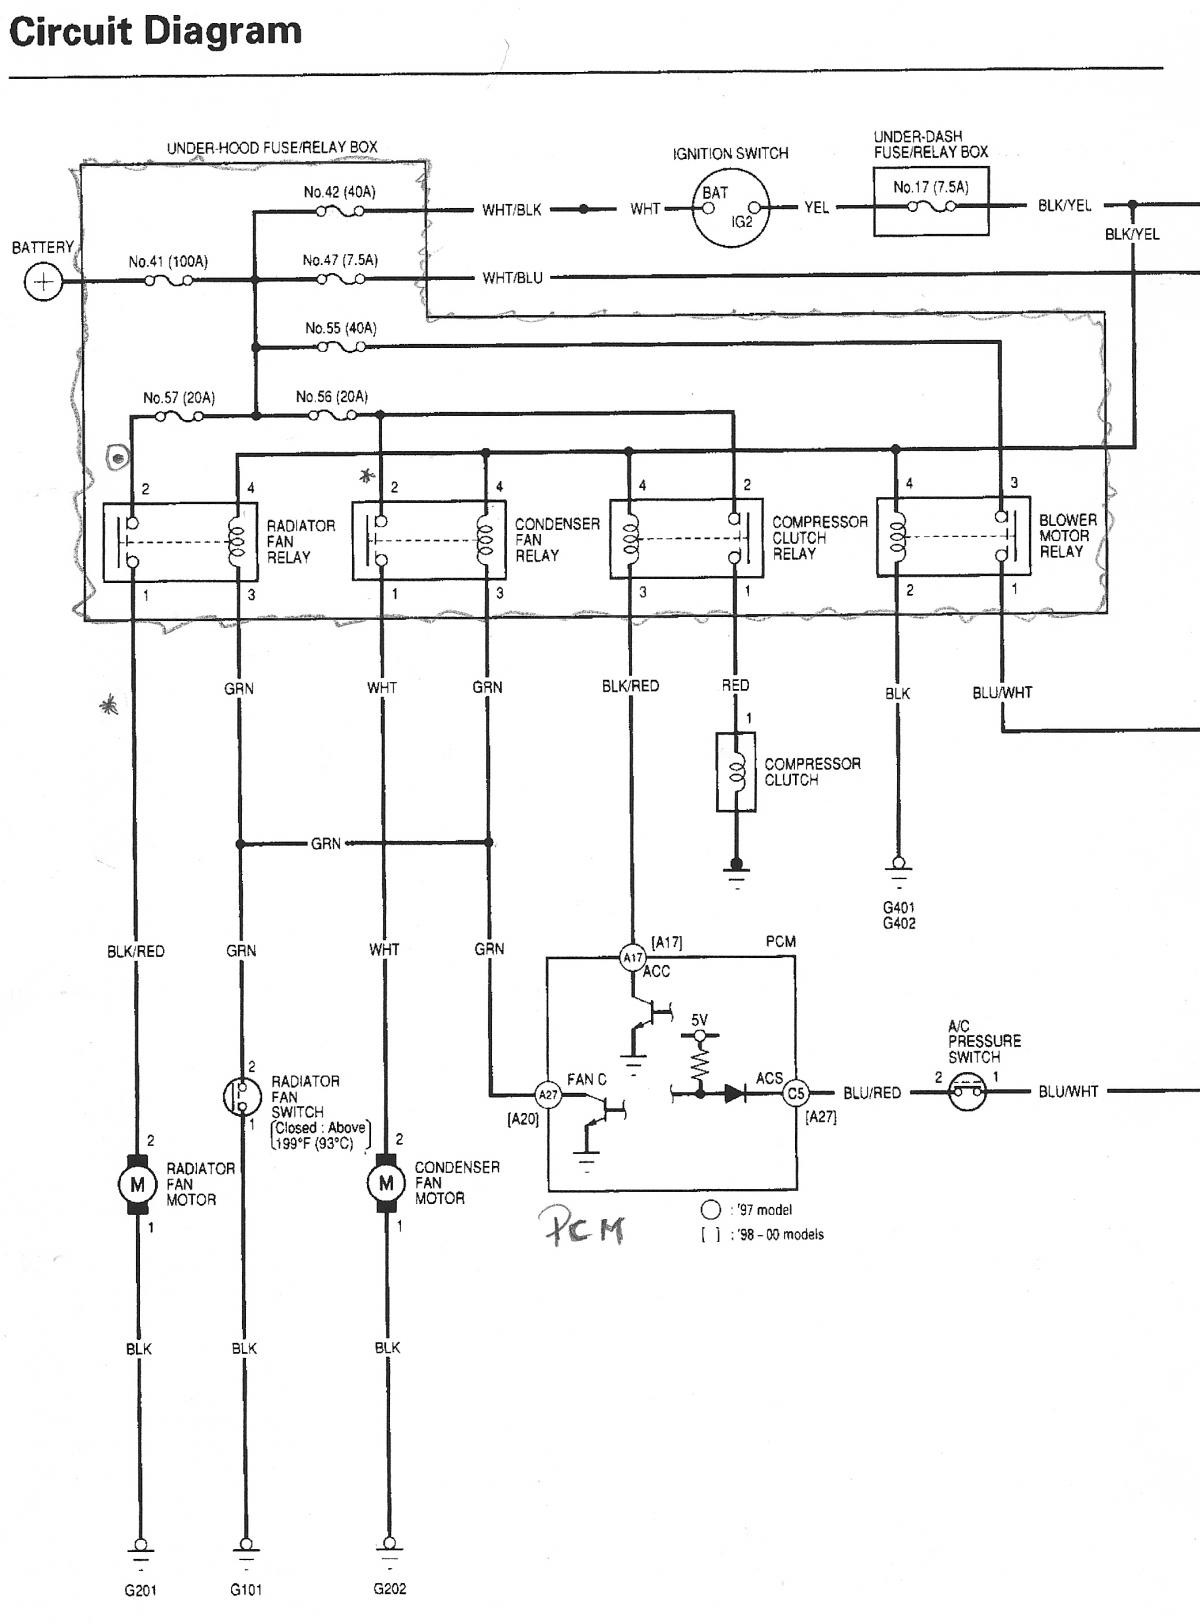 Wiring Diagram For 2001 Honda Cr V Diy Enthusiasts Wiring Diagrams \u2022  Honda Fit Fuse Box Honda Cr V Wiring Diagram Charging System